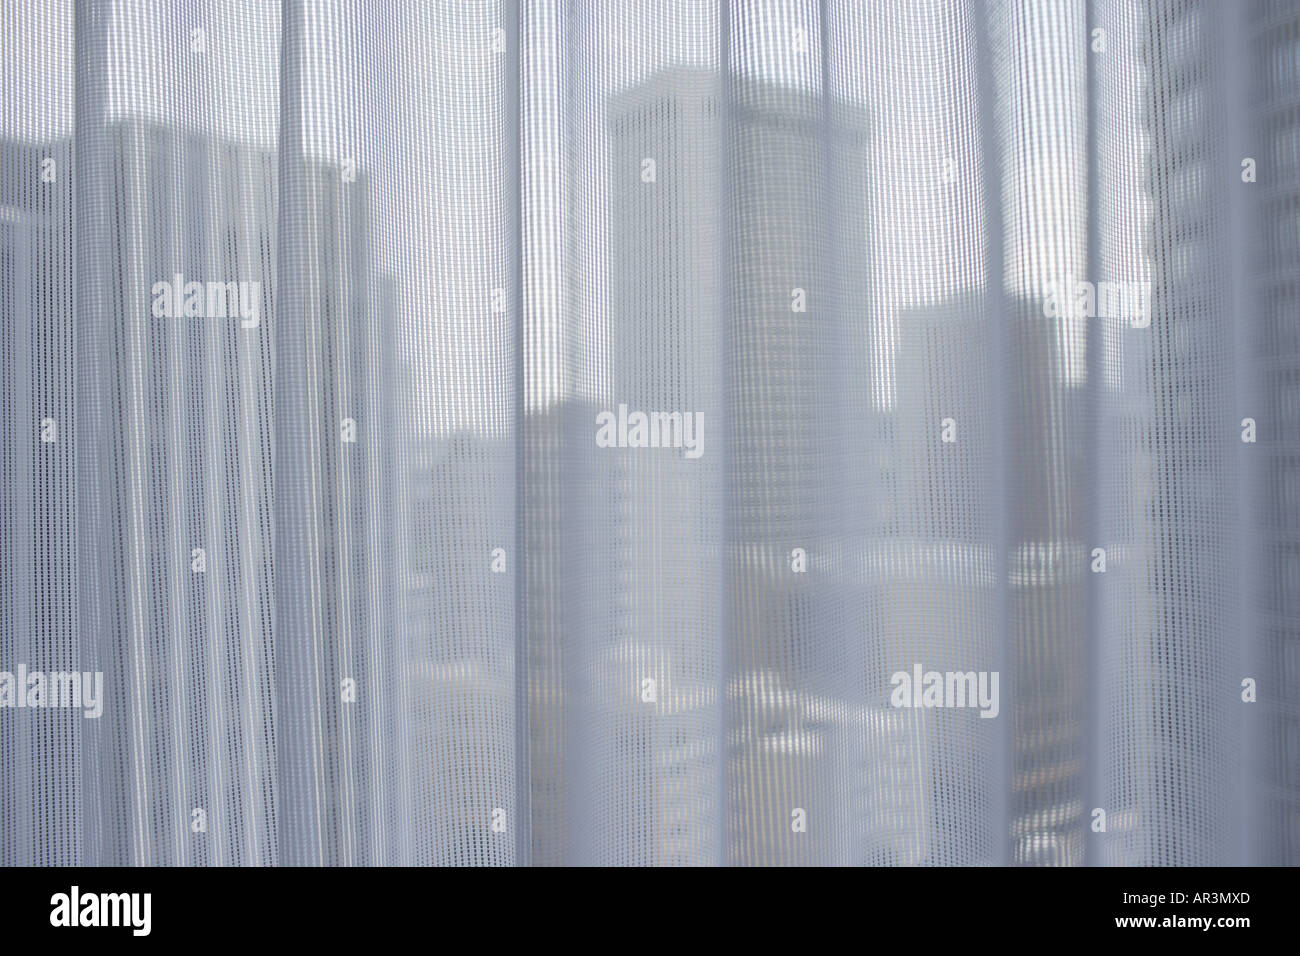 City buildings seen through net curtains Stock Photo, Royalty Free ... for Net Curtains Texture  110ylc